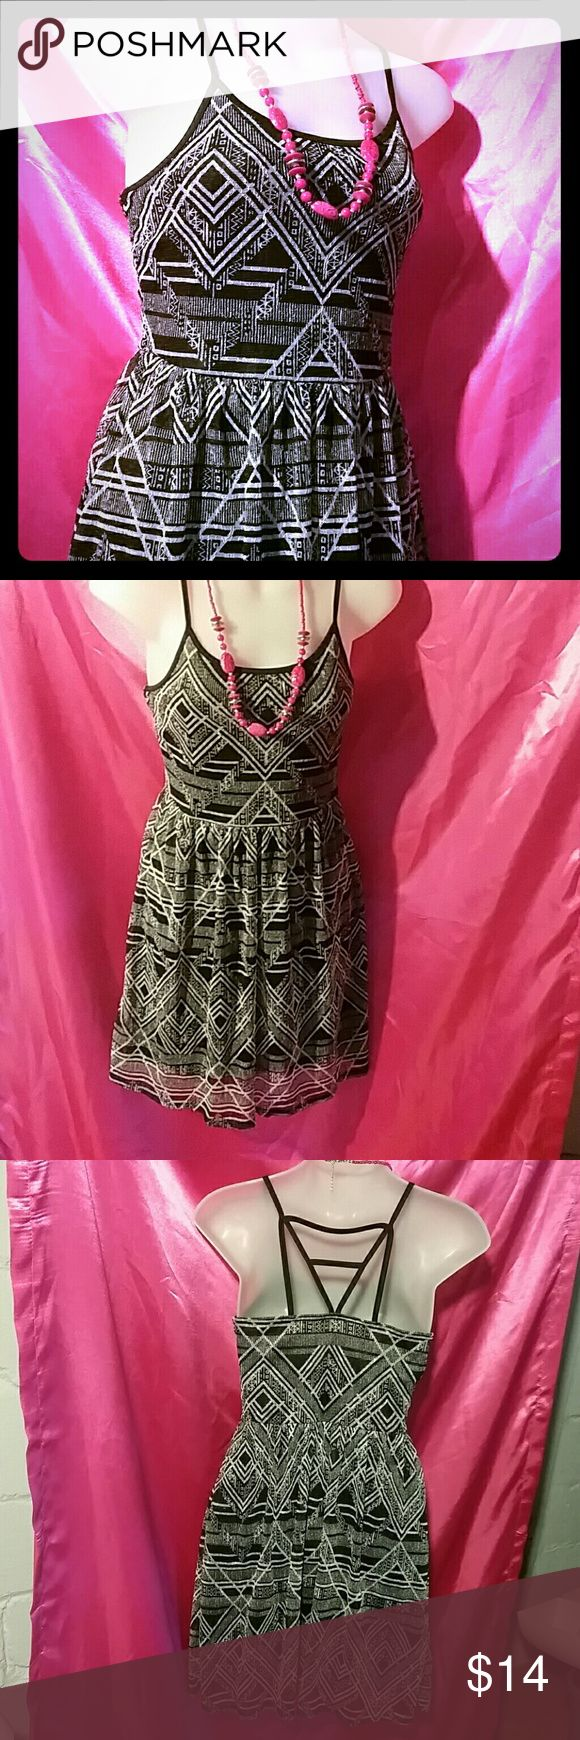 Black/white Aztec party dress Another dress great for a party or also can be worn as a sundress has black slip under see-through top with spaghetti straps and design on the back great dress for many occasions with empire waist  no boundaries  Dresses